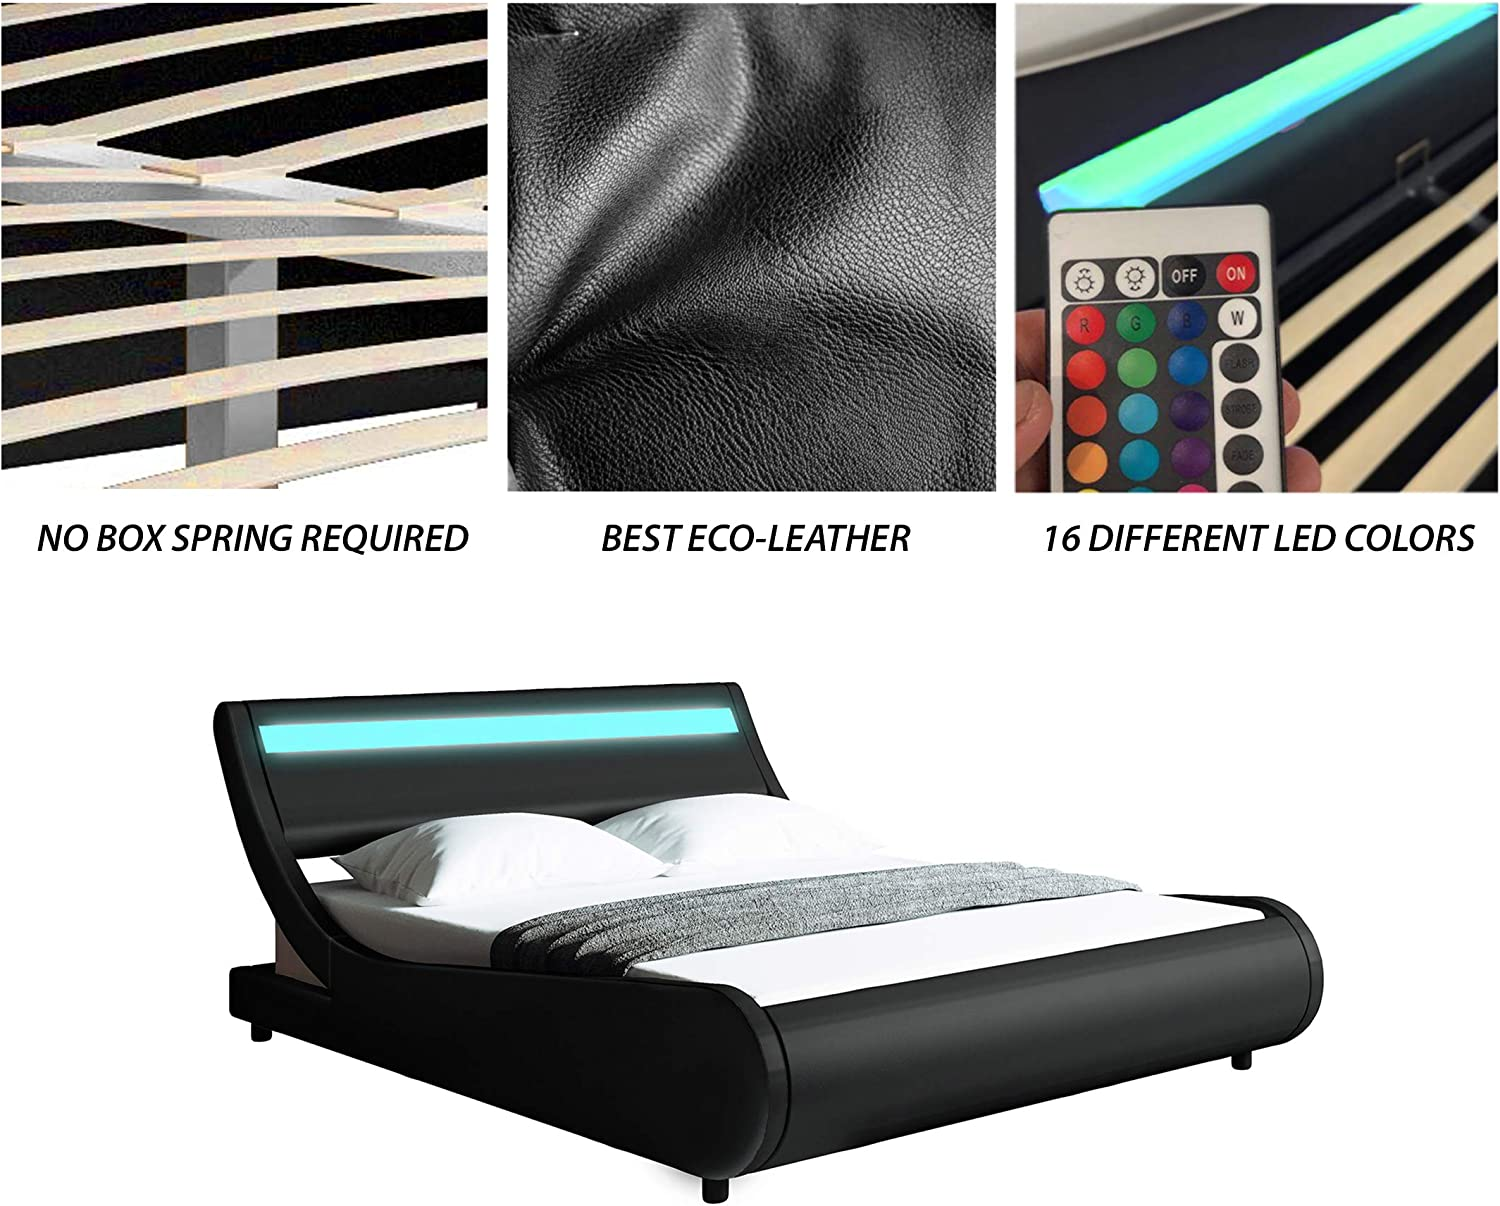 Full, Black PU Faux Leather Upholstered Modern Bed Frame with Headboard Modern Contemporary Wave-Like Curve Upholstered Platform Bed with LED Lights Headboard Low Profile Curved Bed Frame